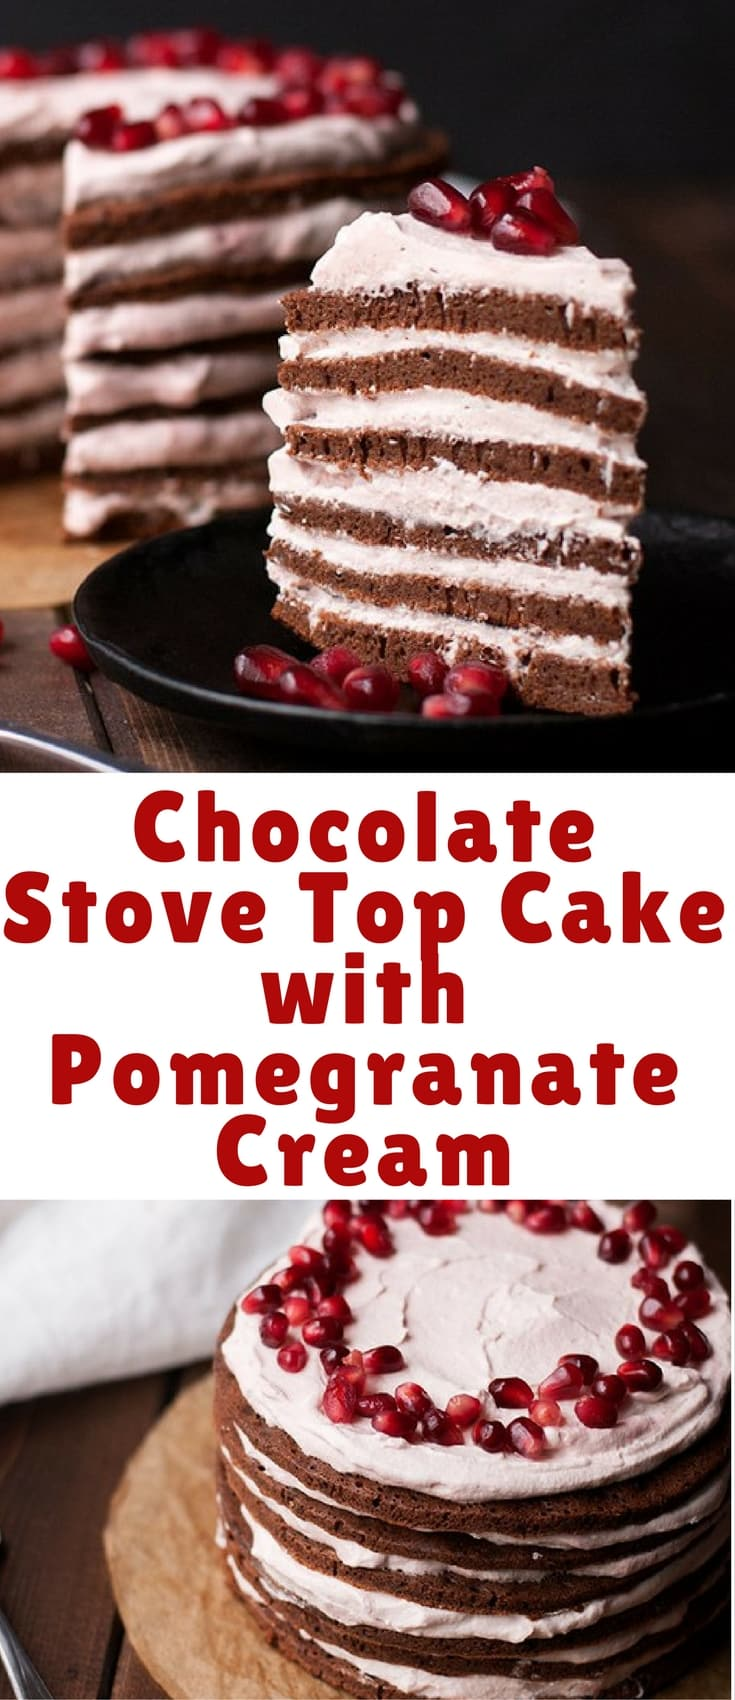 This stovetop cake with pomegranate cream is easy to make and you don't need an oven! Chocolate and pomegranate come together to make a rich but fresh dessert.